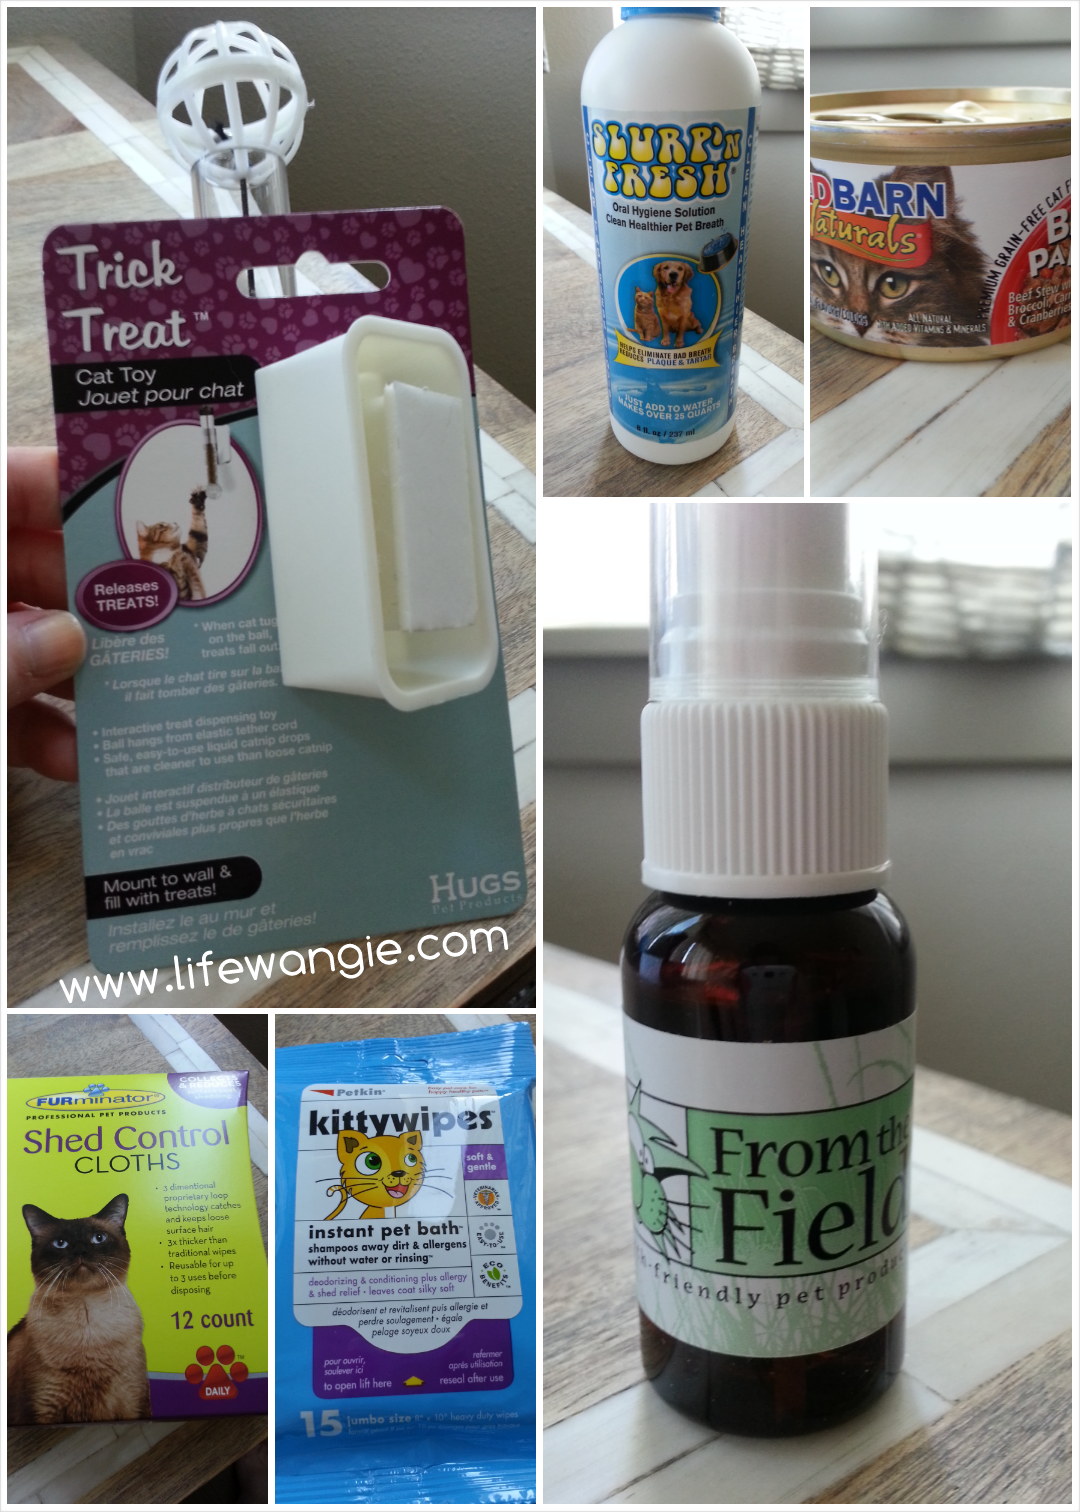 Contents of PetBox for Cats